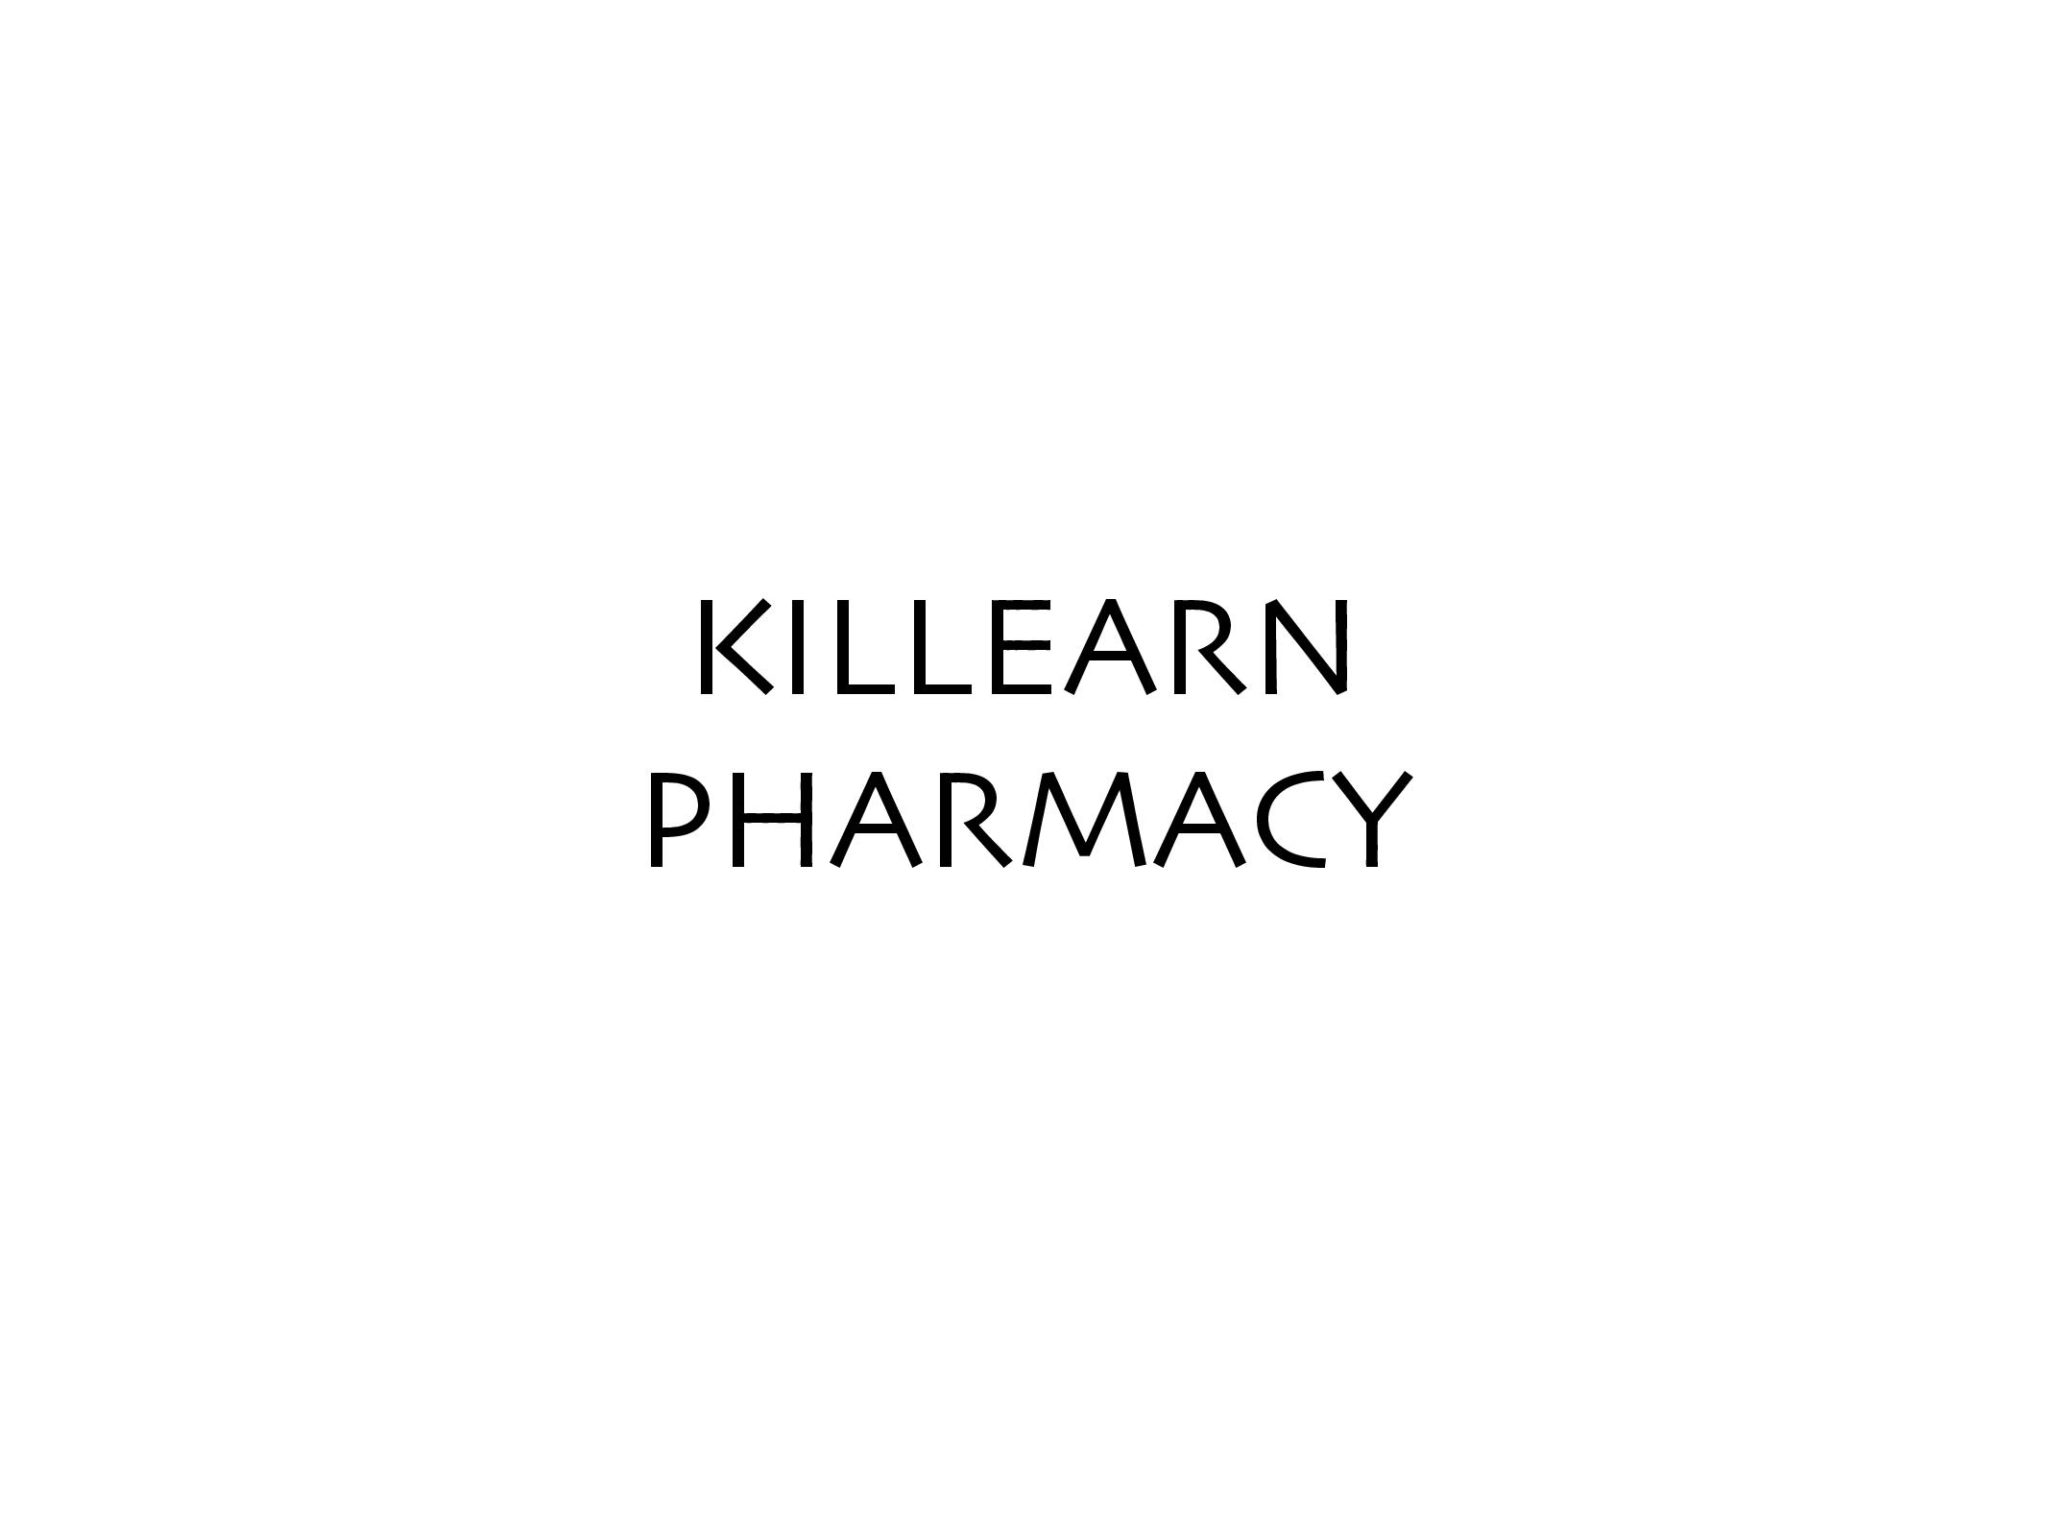 KILLEARN PHARMACY-page-001